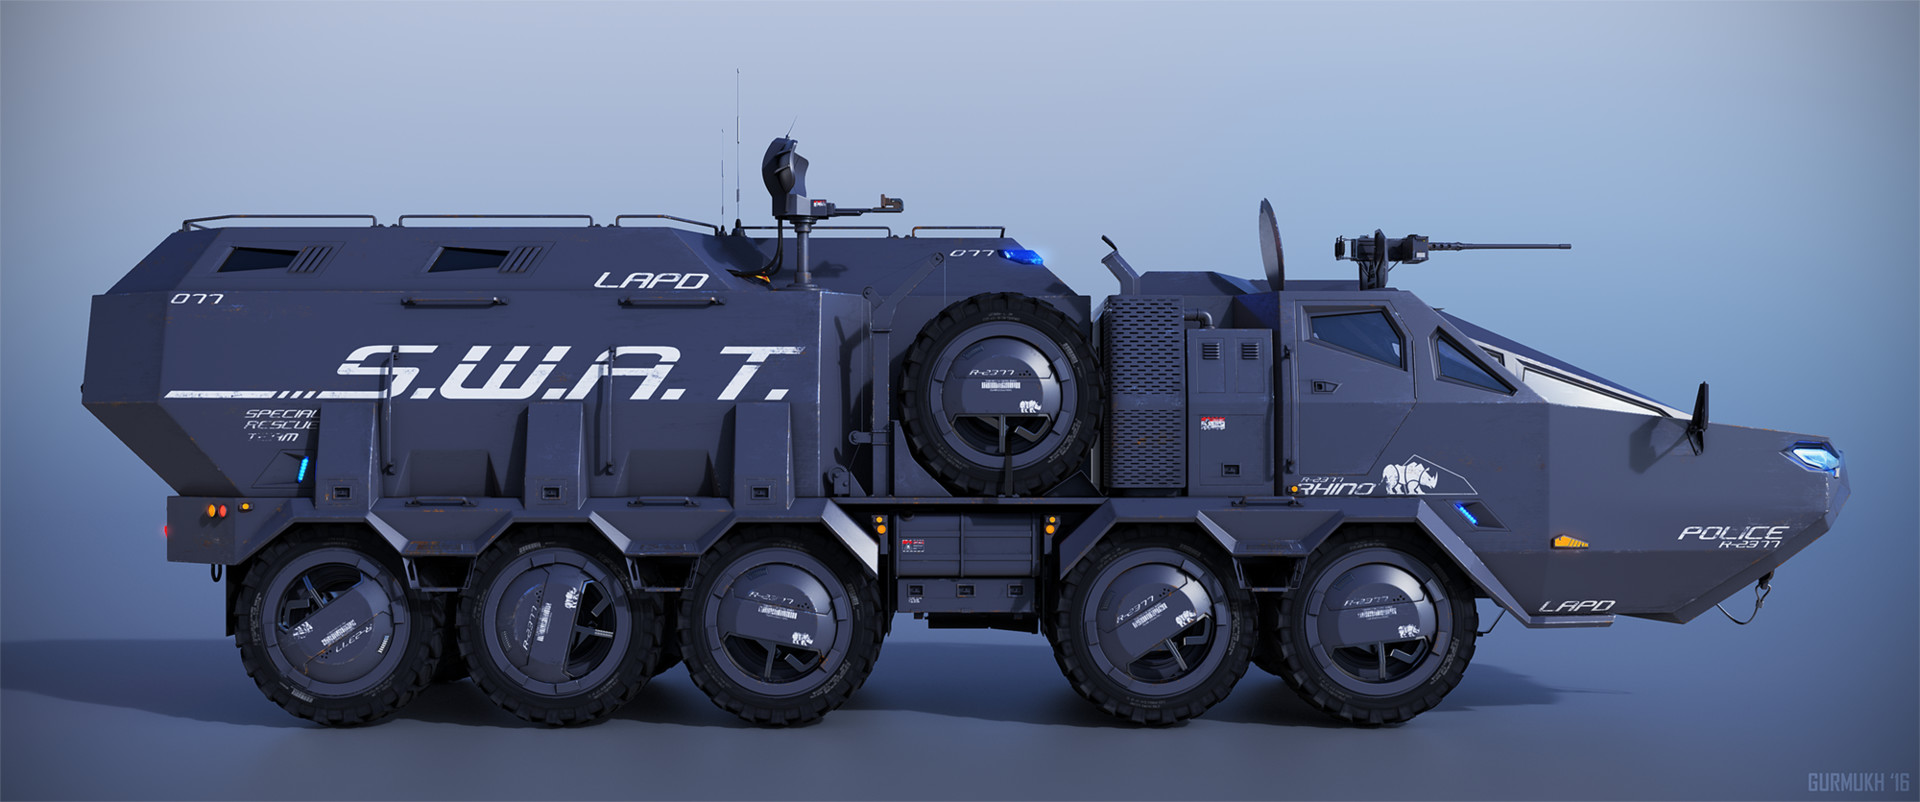 Gurmukh bhasin gurmukh swat truck final 03bs